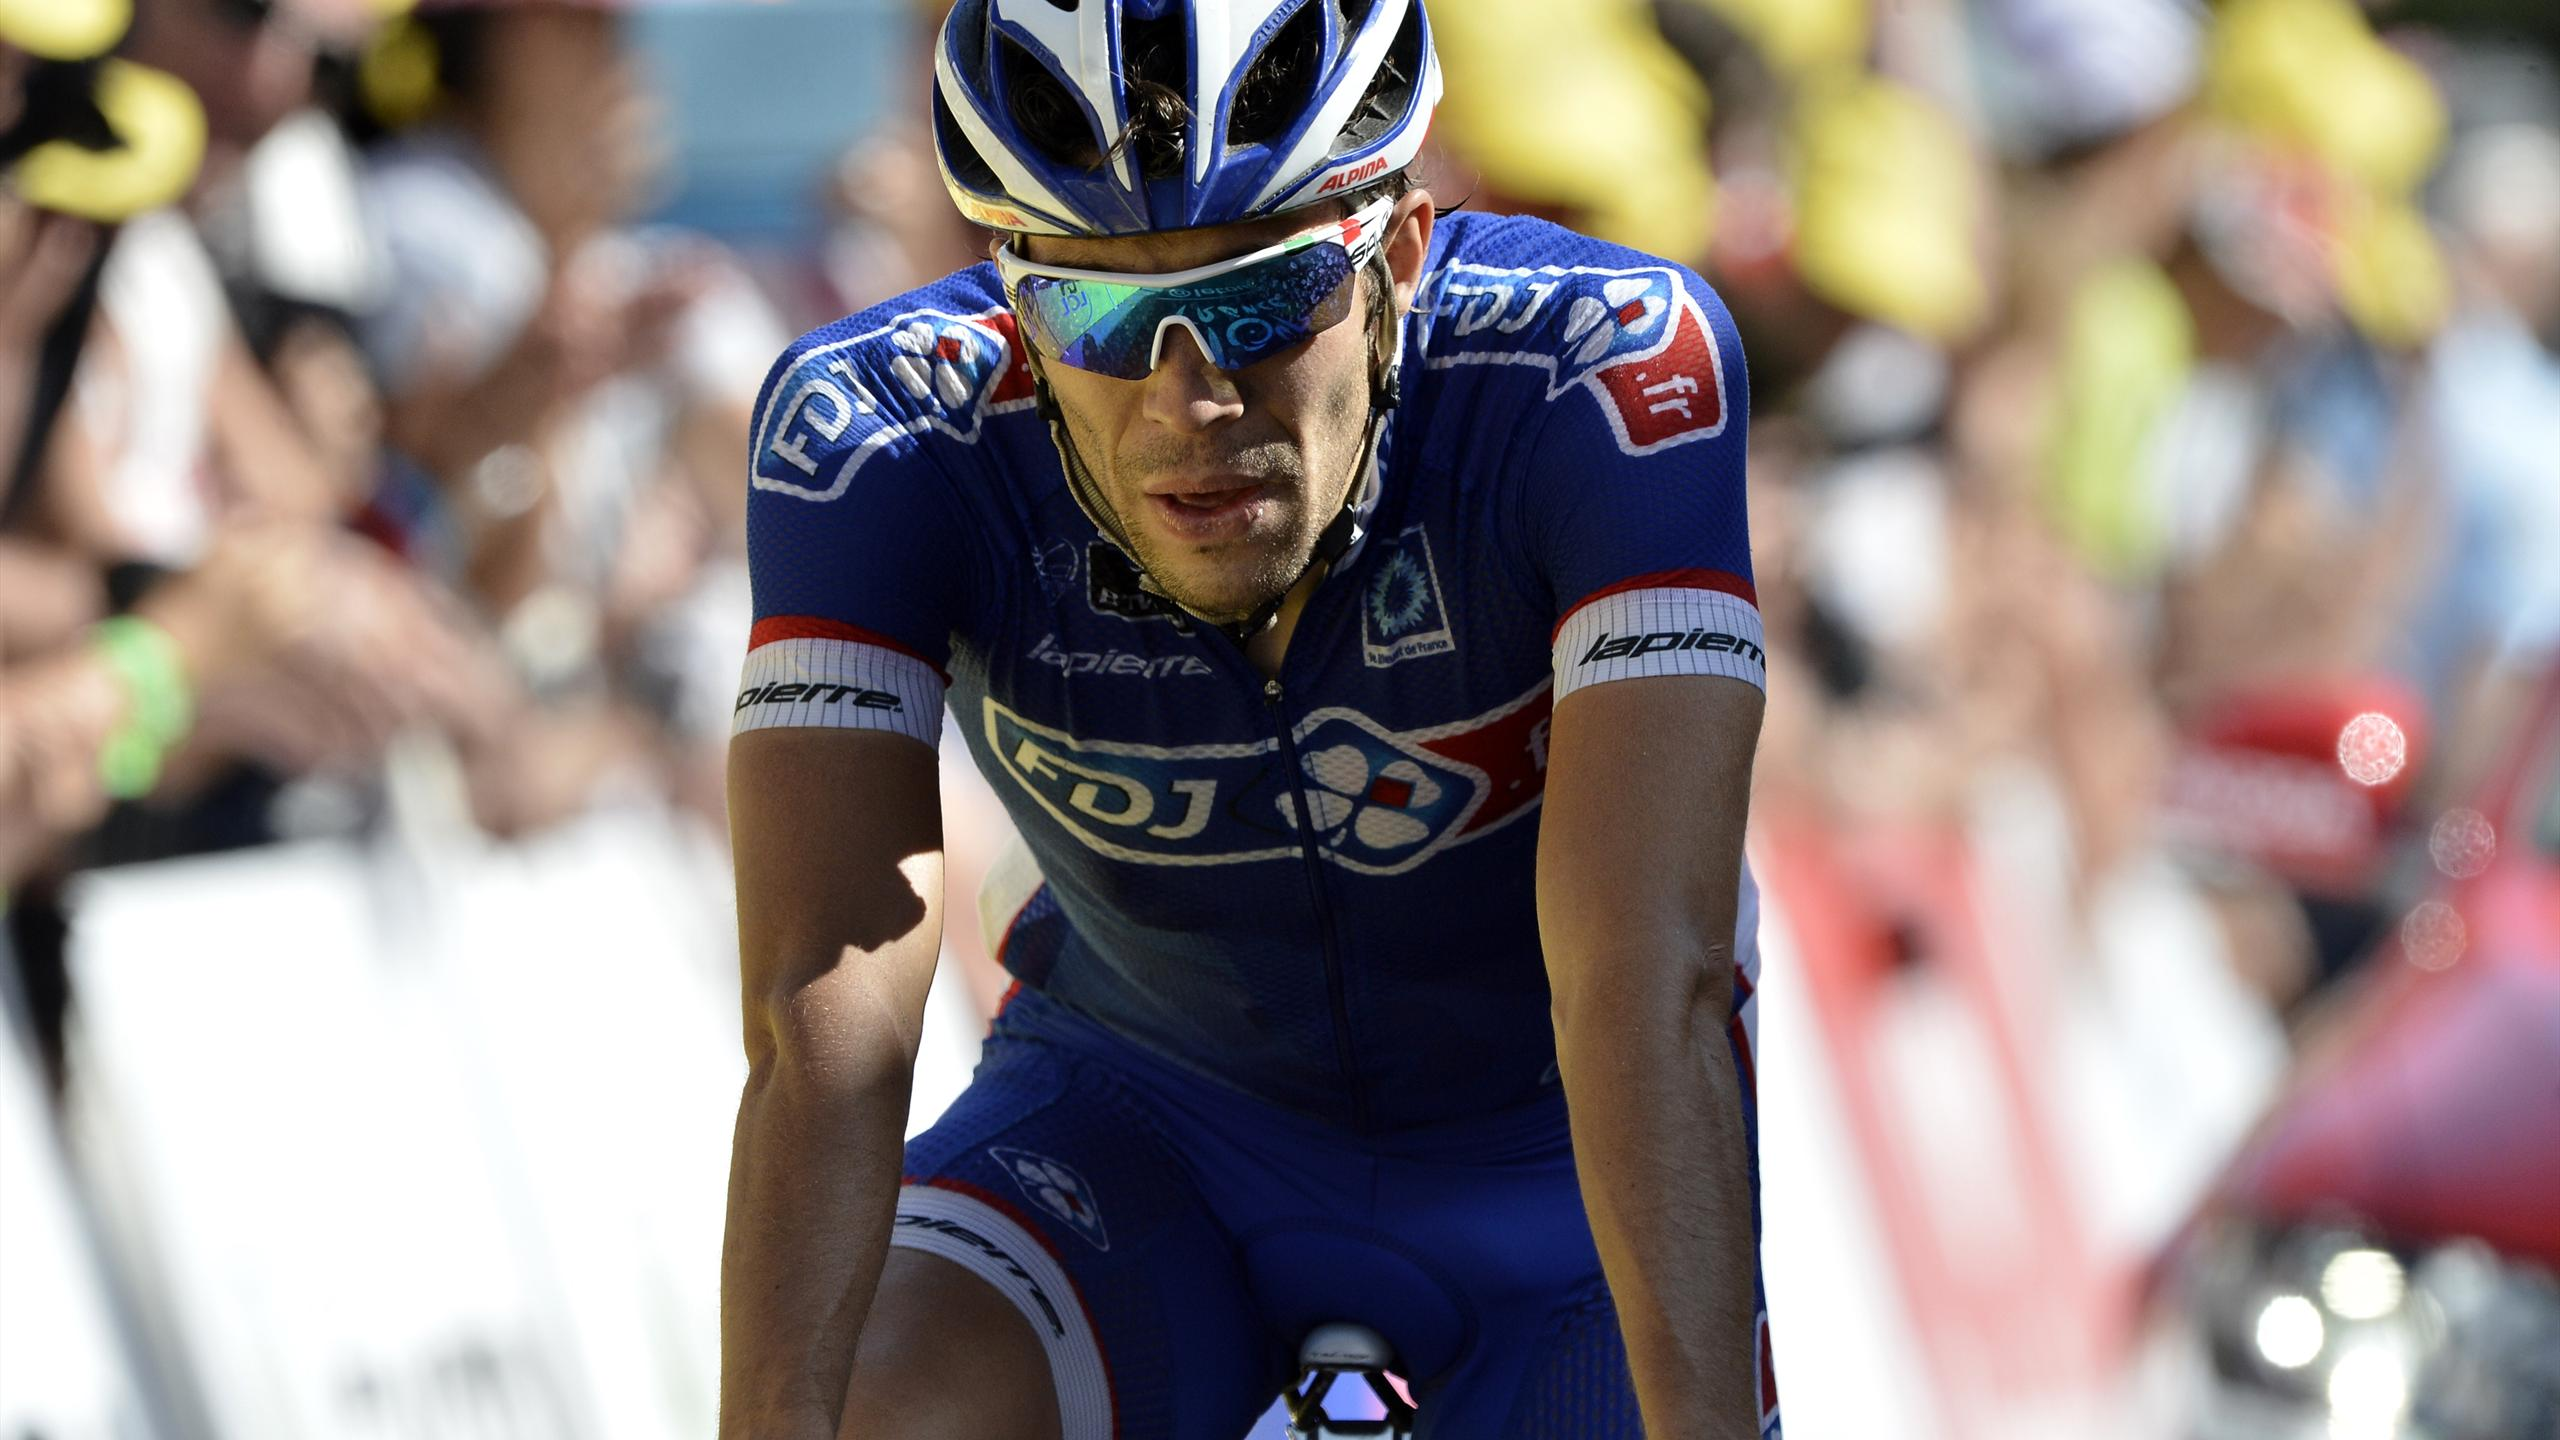 Photo: Thibaut Pinot (AFP) (uk.eurosport.yahoo.com)